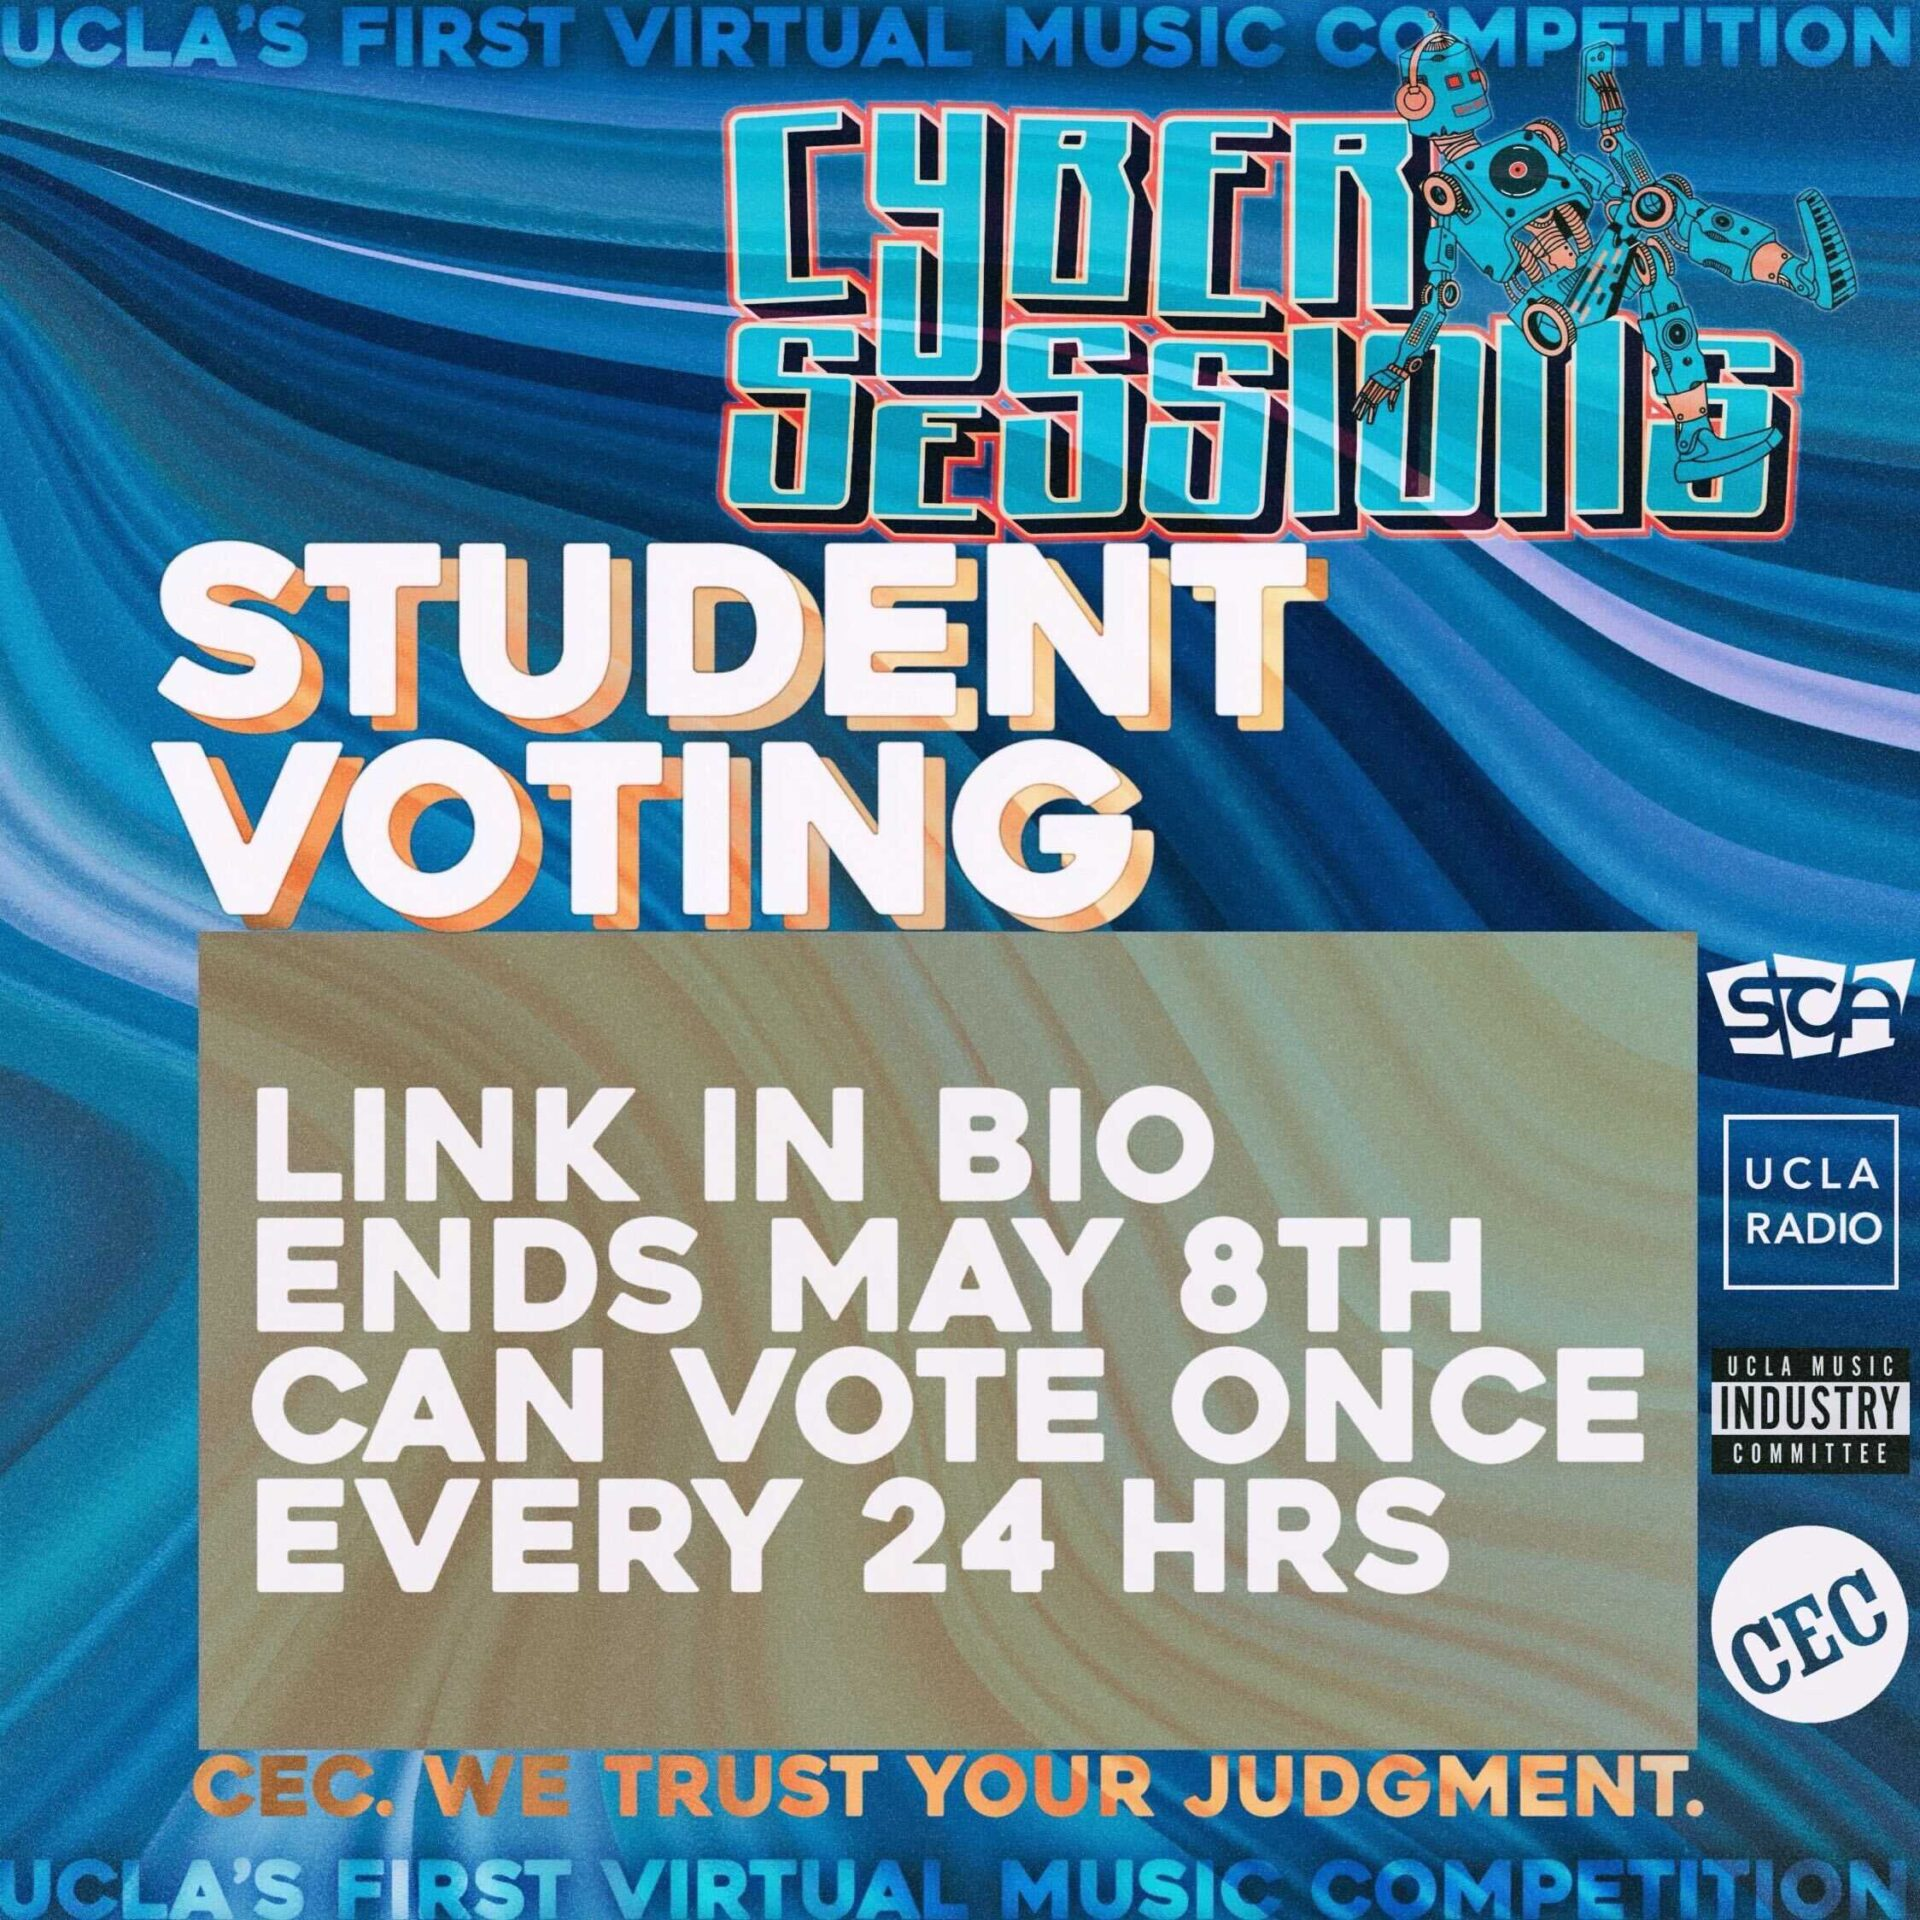 Cyber Sessions Virtual Music Competition Student Voting